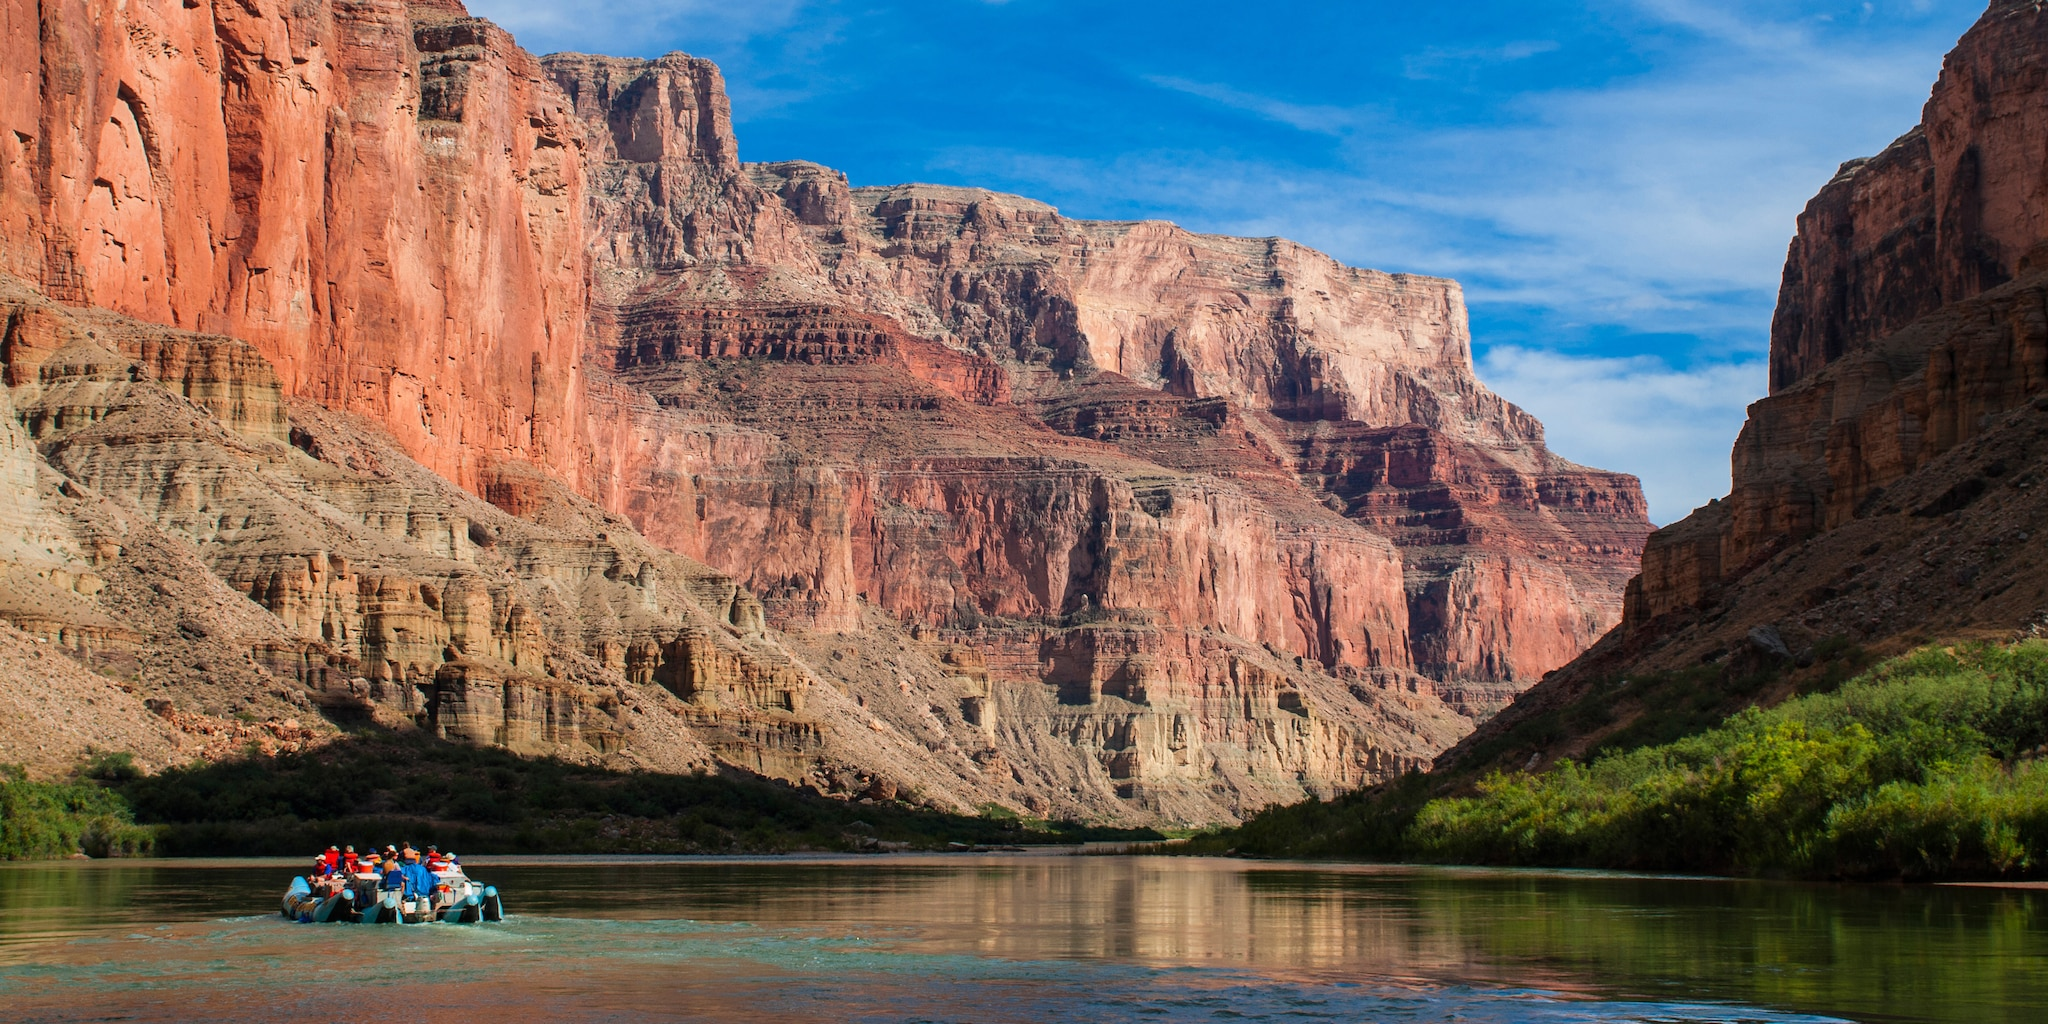 A group of tourists raft down one of the Colorado River's more tranquil spots